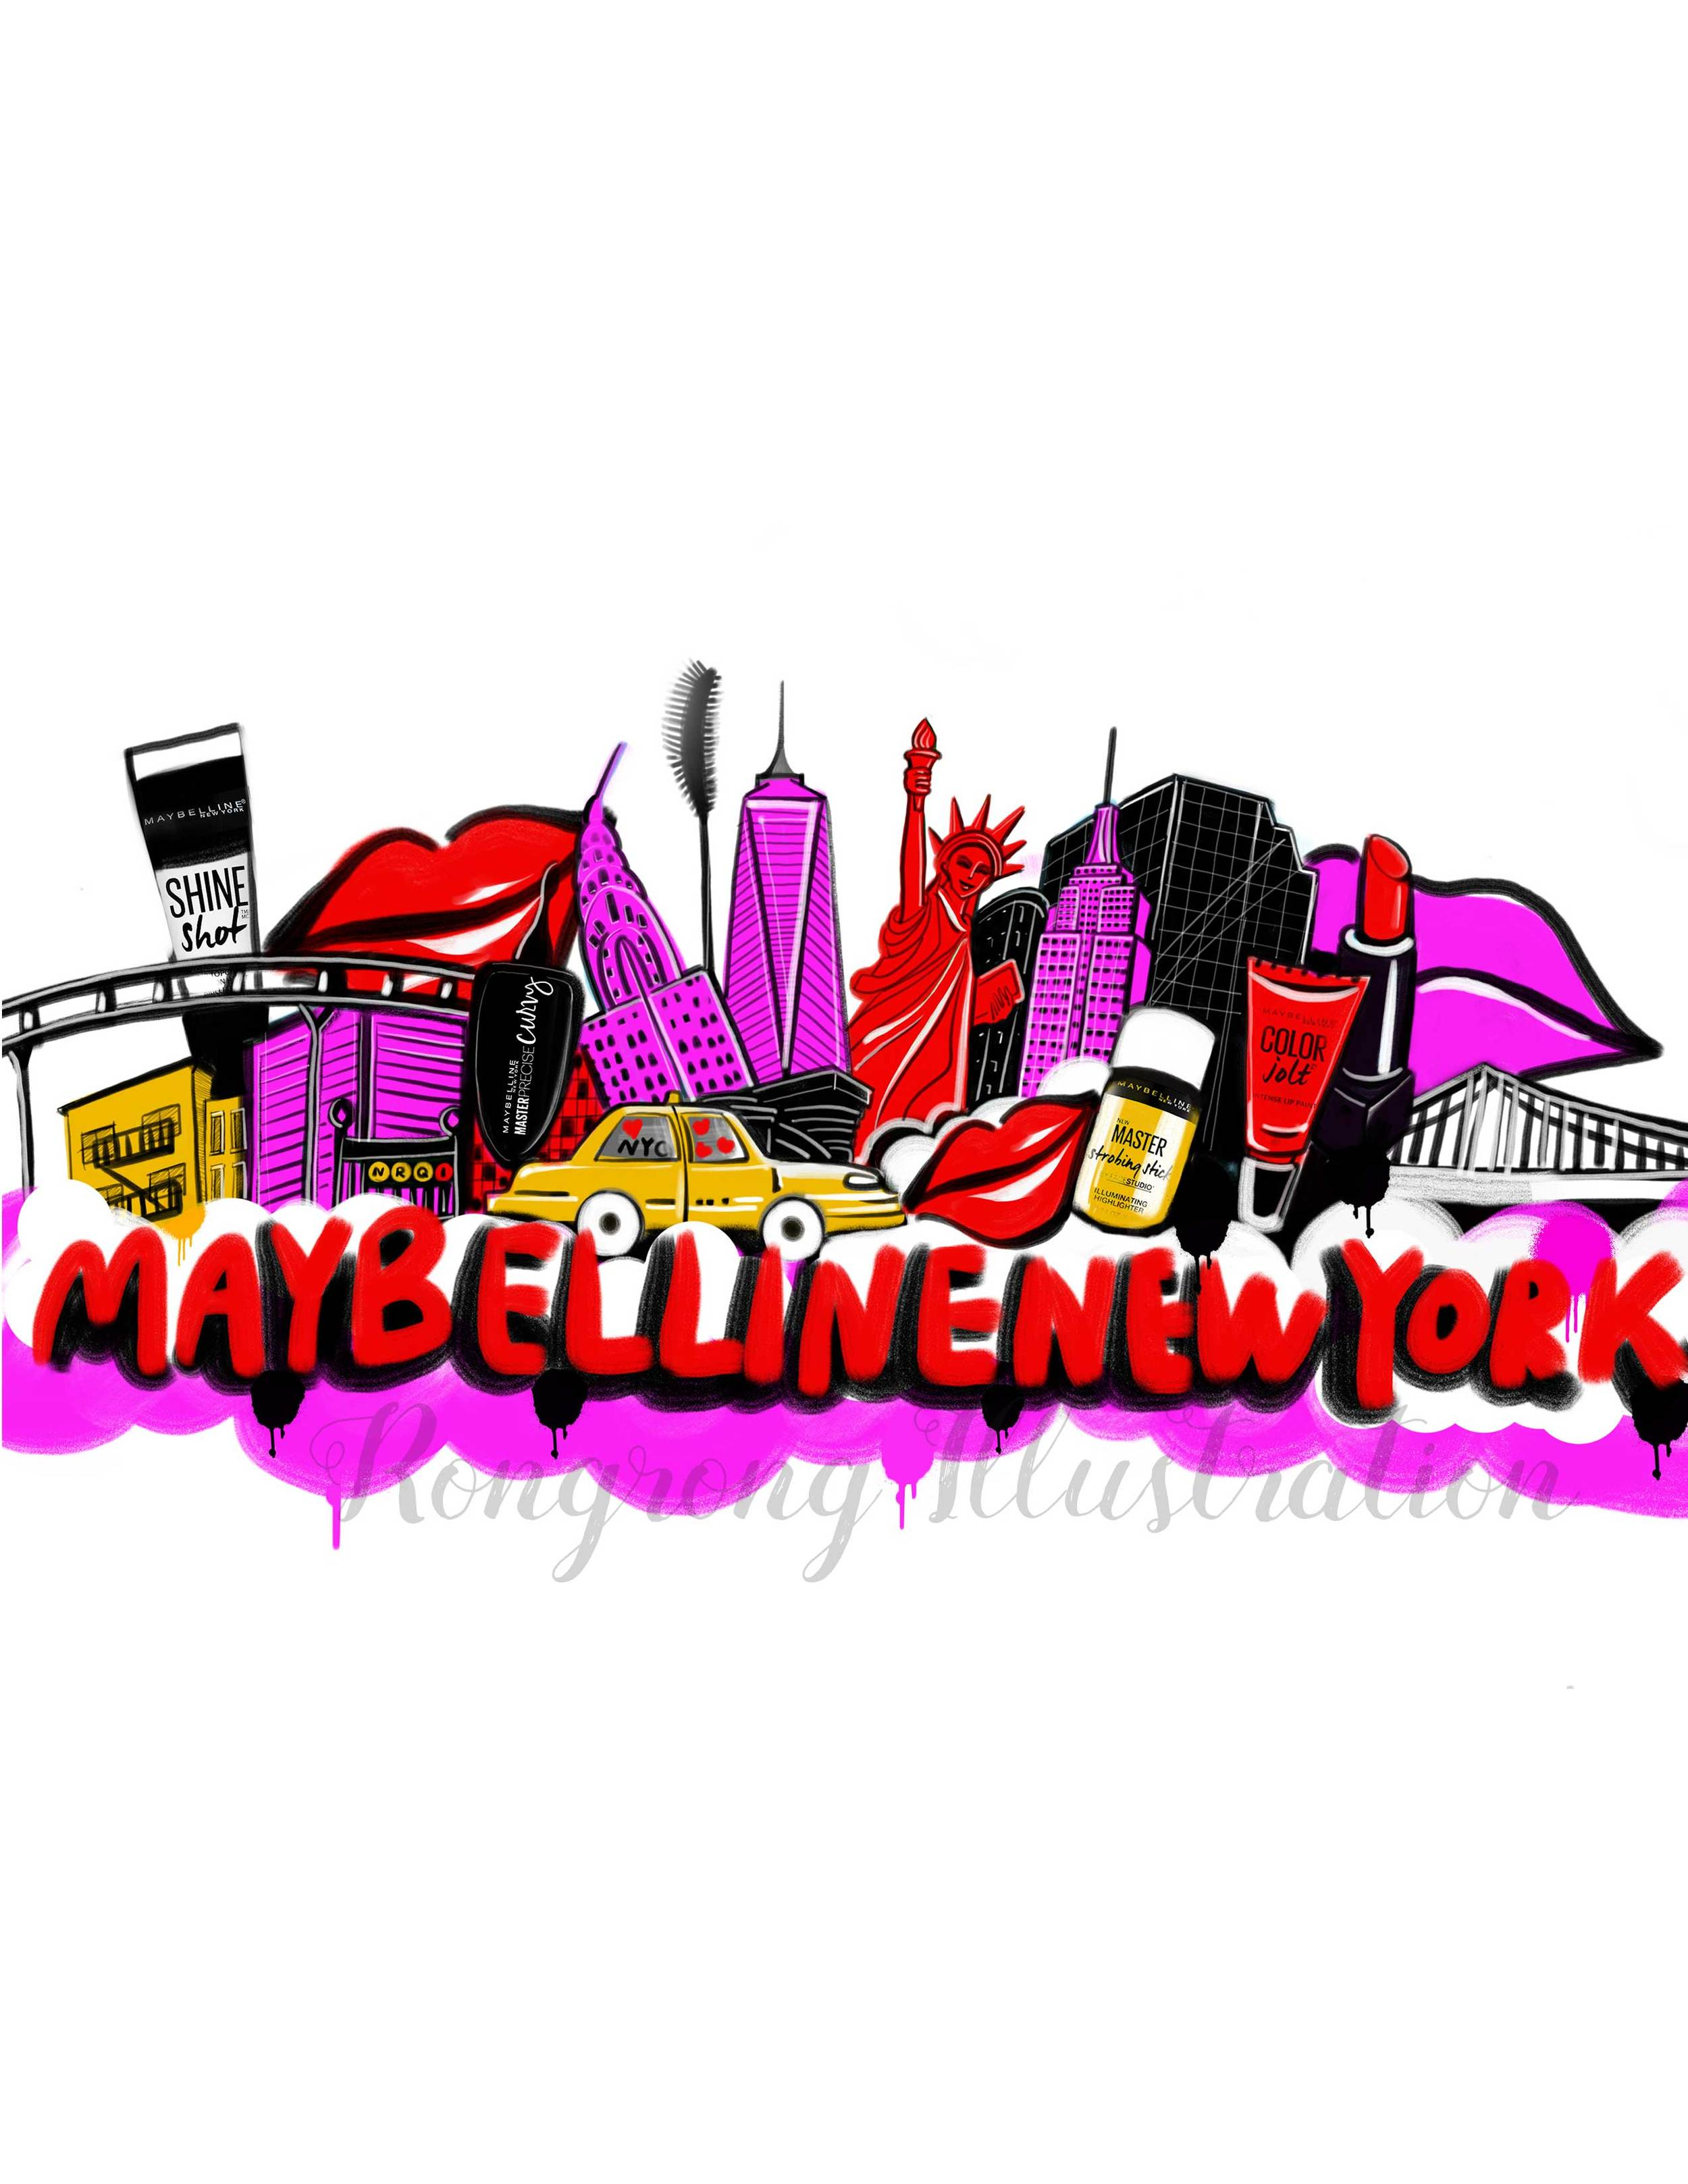 A new york skyline illustration/design on water bottle branded by Maybelline for social influencers. The design only allows 6 colors due to printing request.